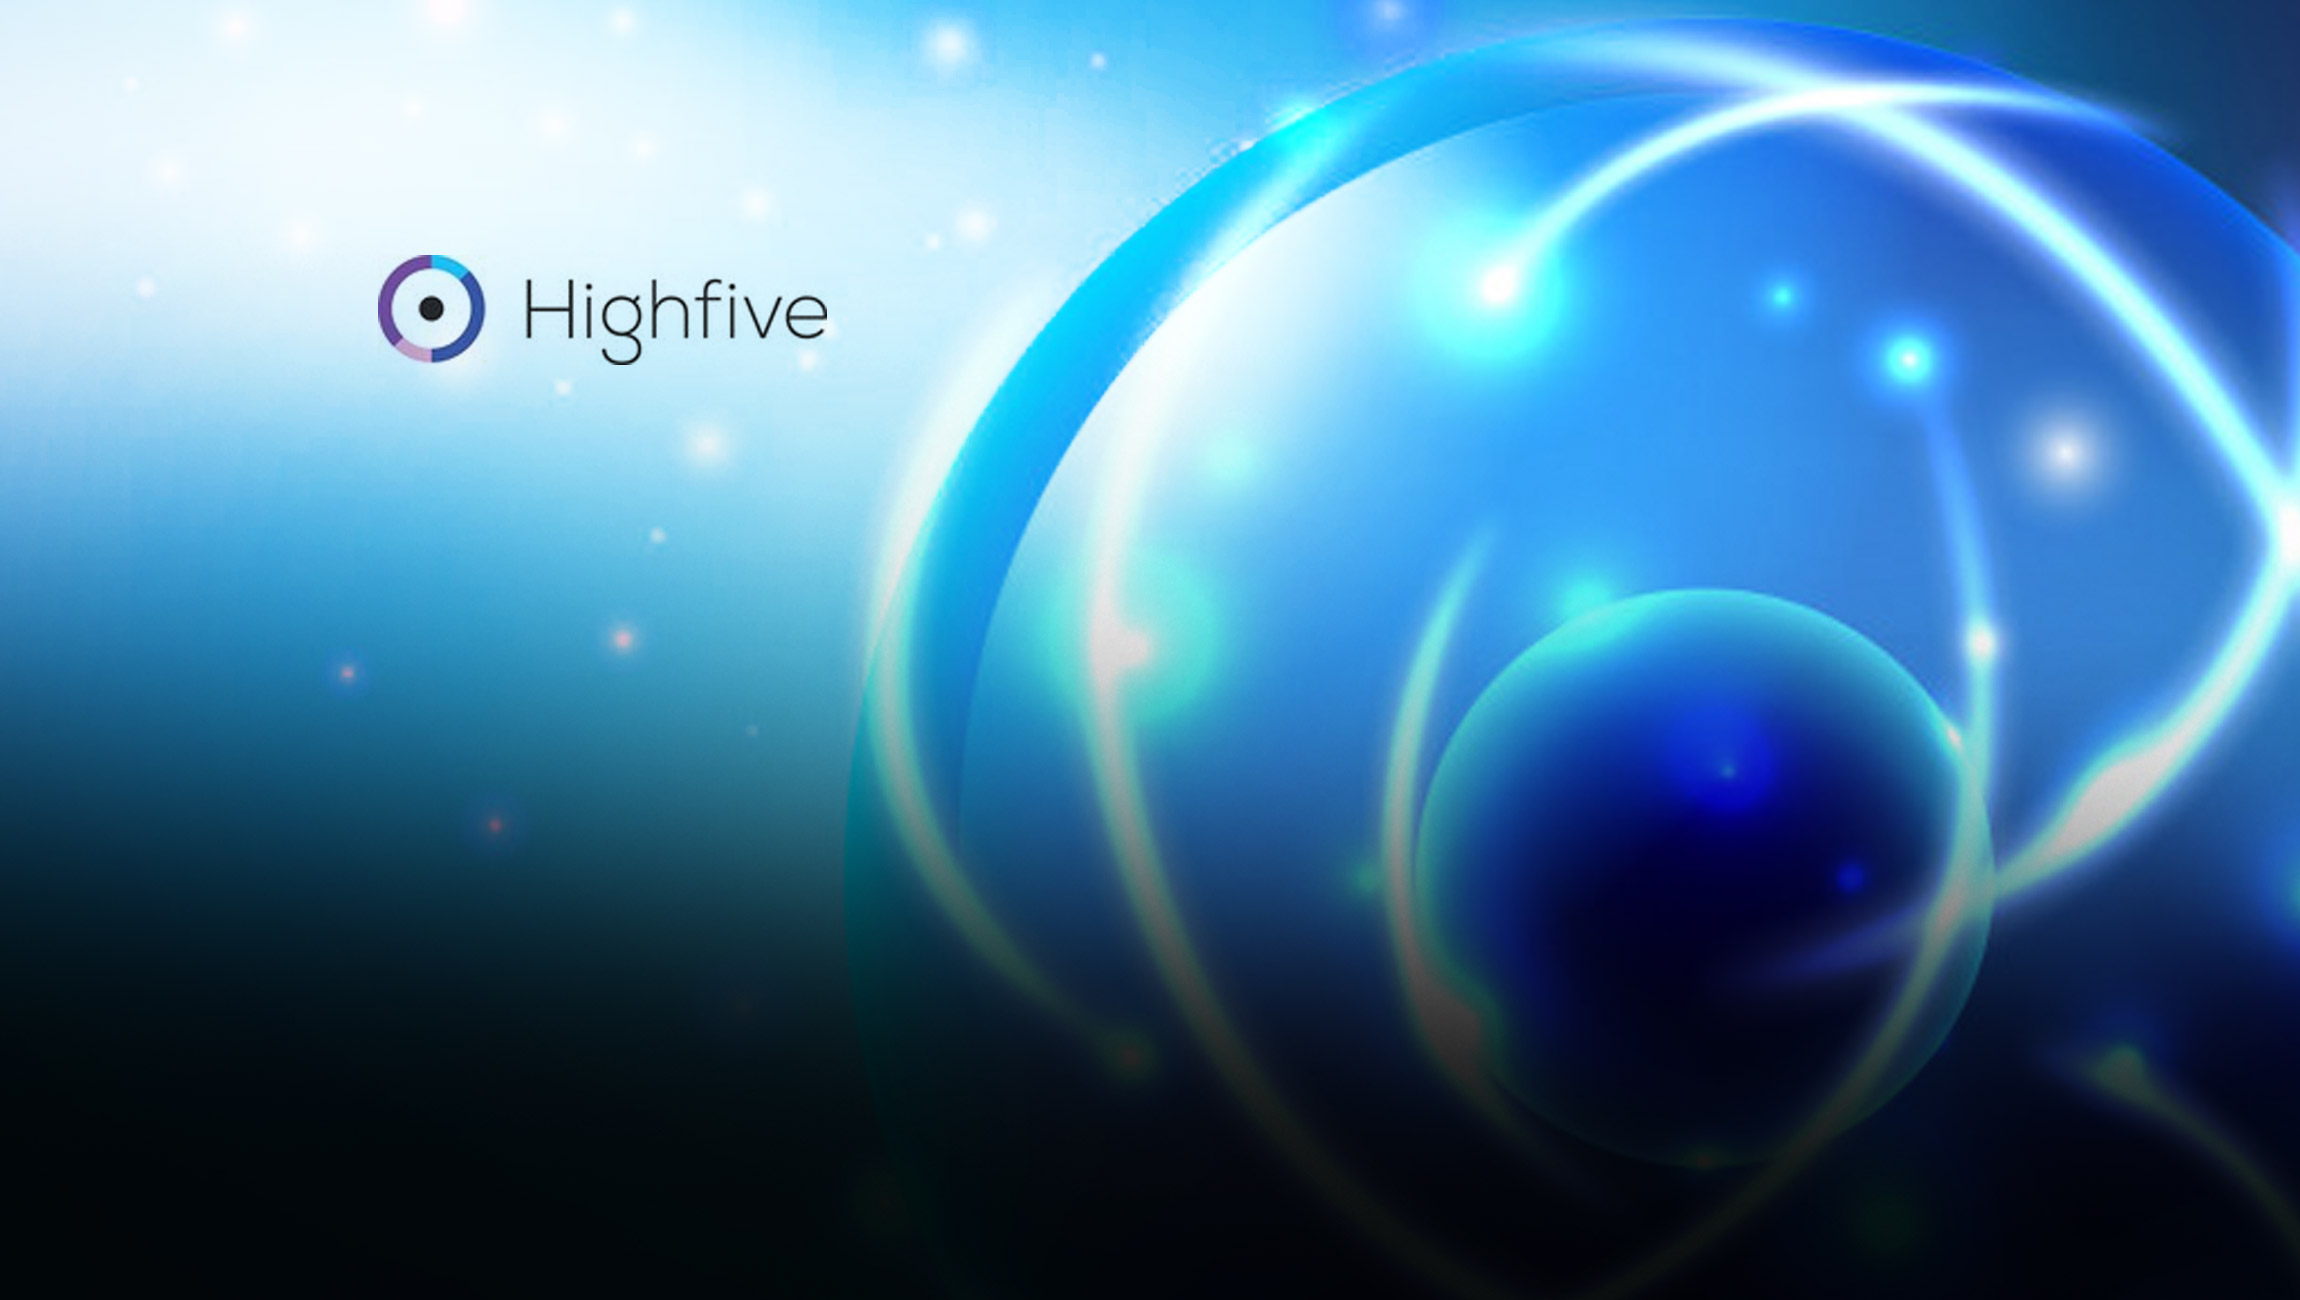 Highfive Continues Investment In Its Award-Winning Video Platform To Support Global SMB Market During COVID-19 Pandemic